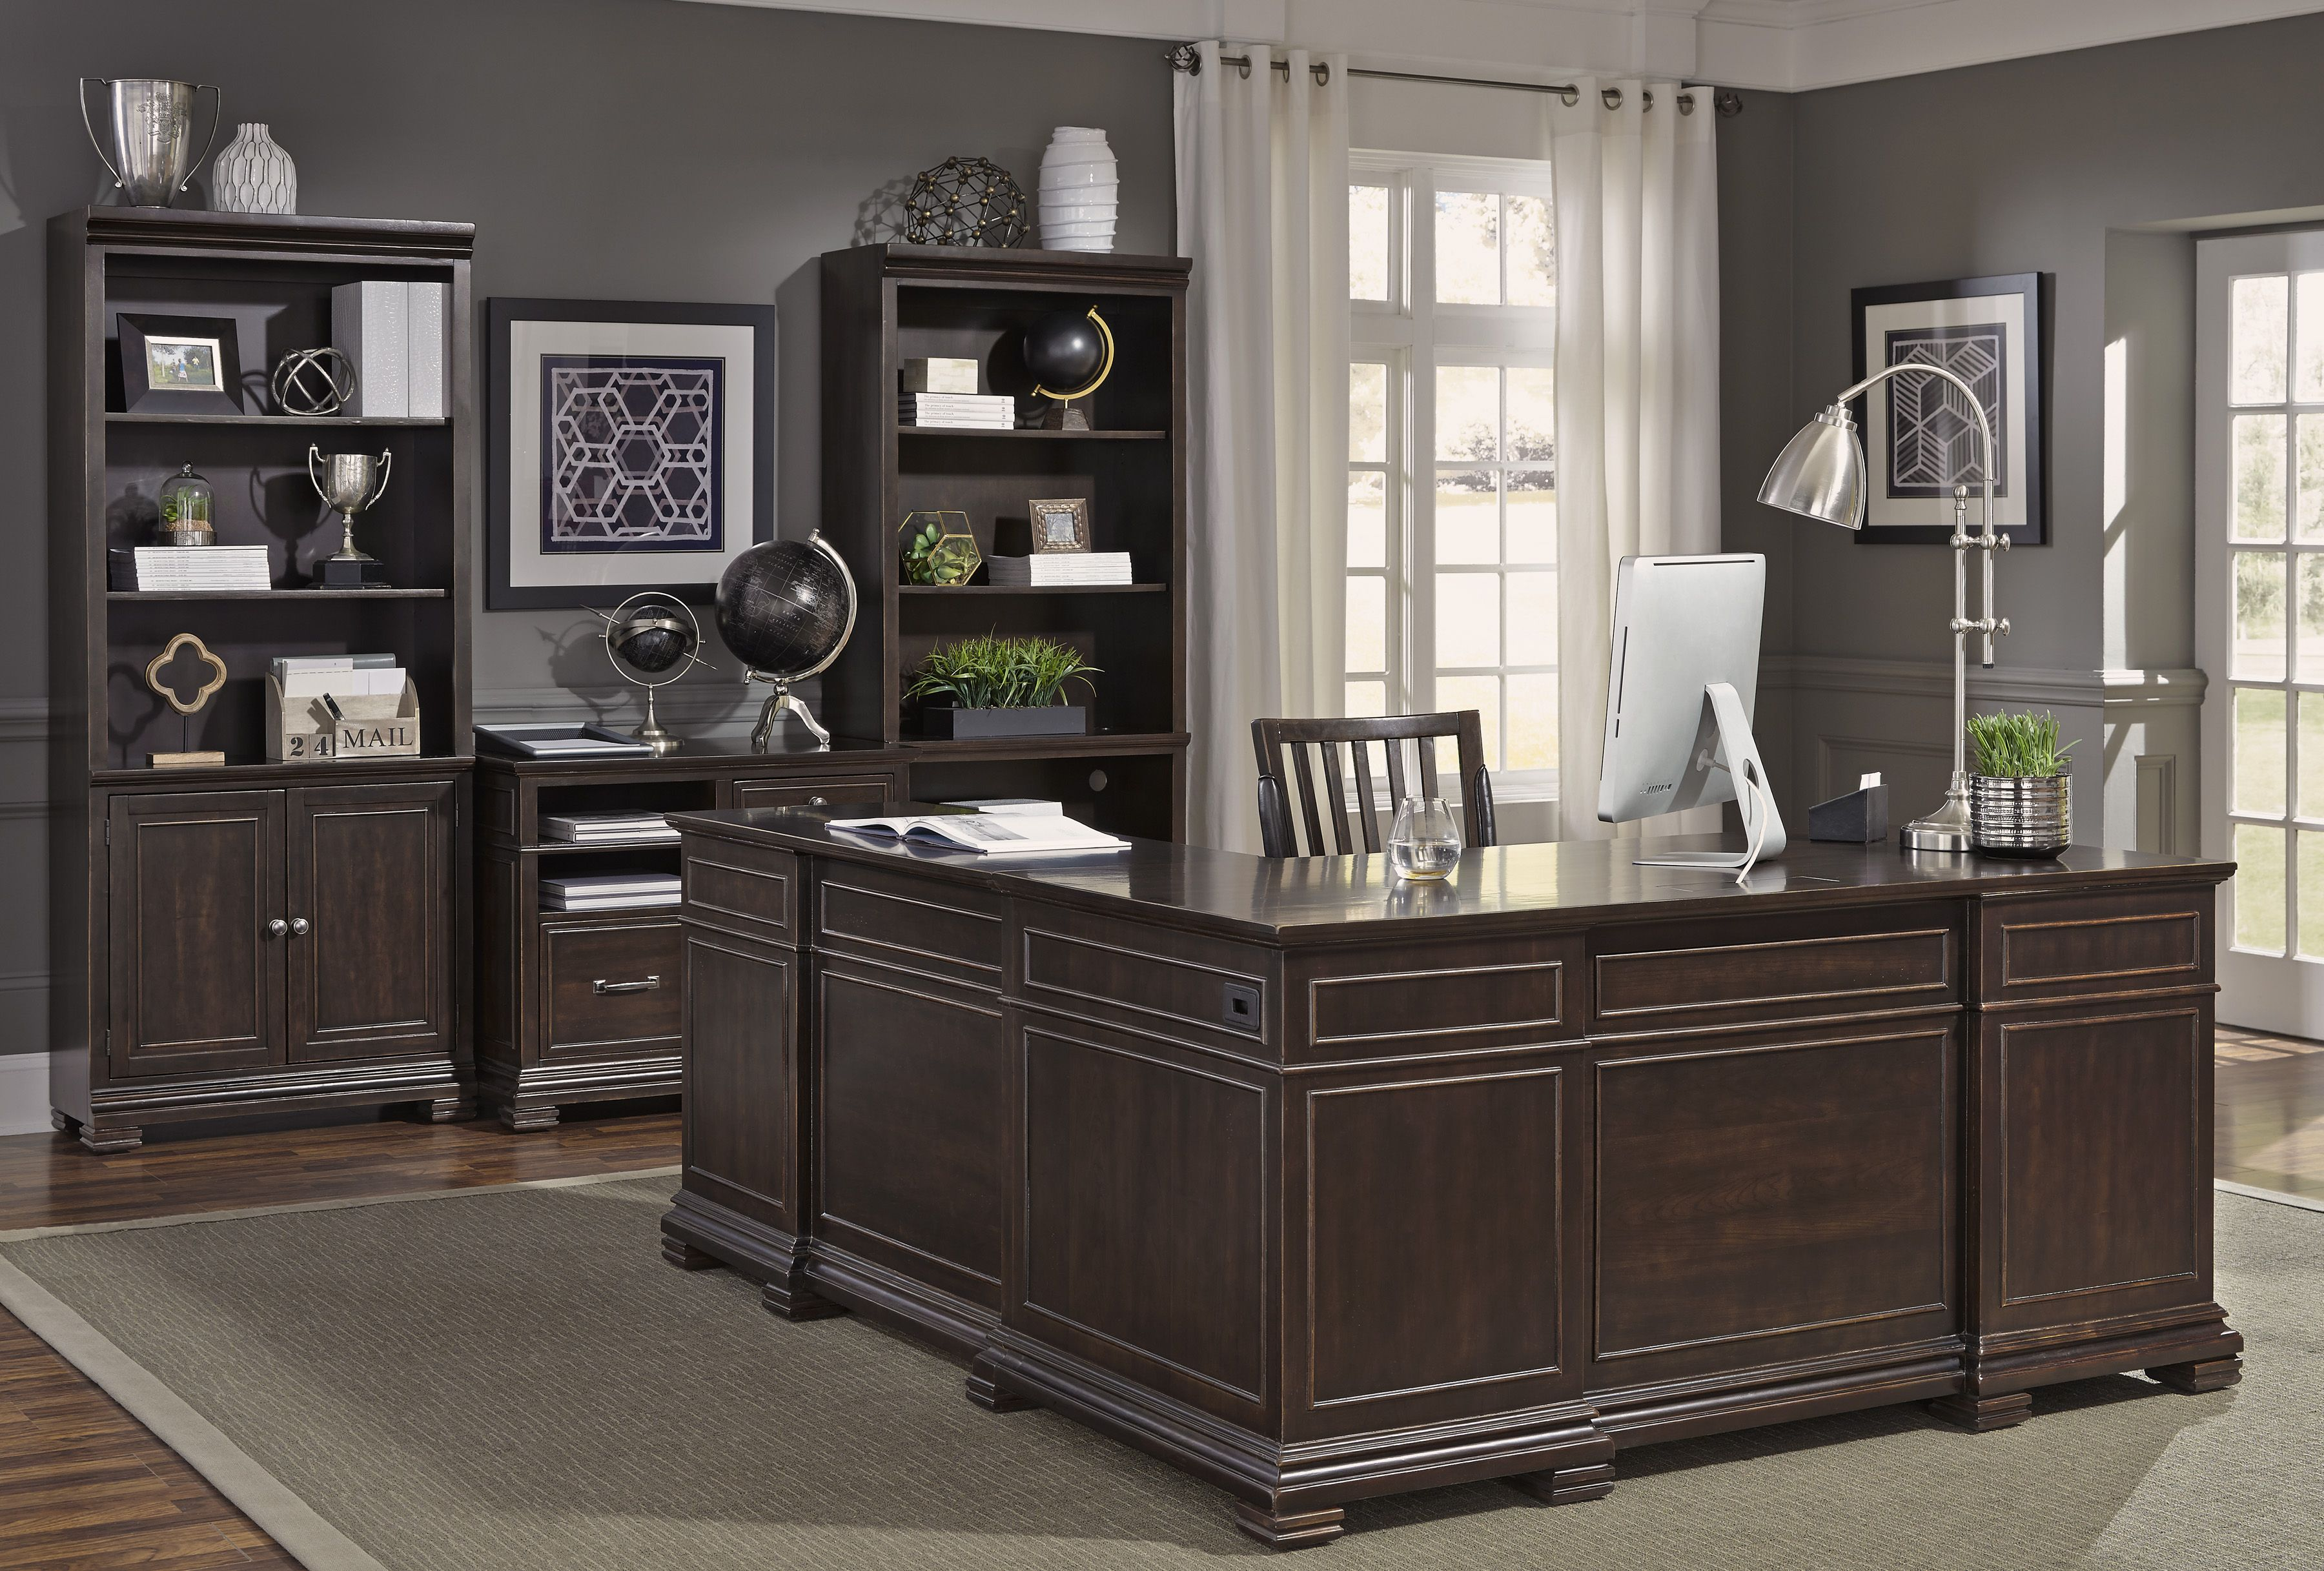 Cognac finish on Acacia veneer accented with antiqued pewter